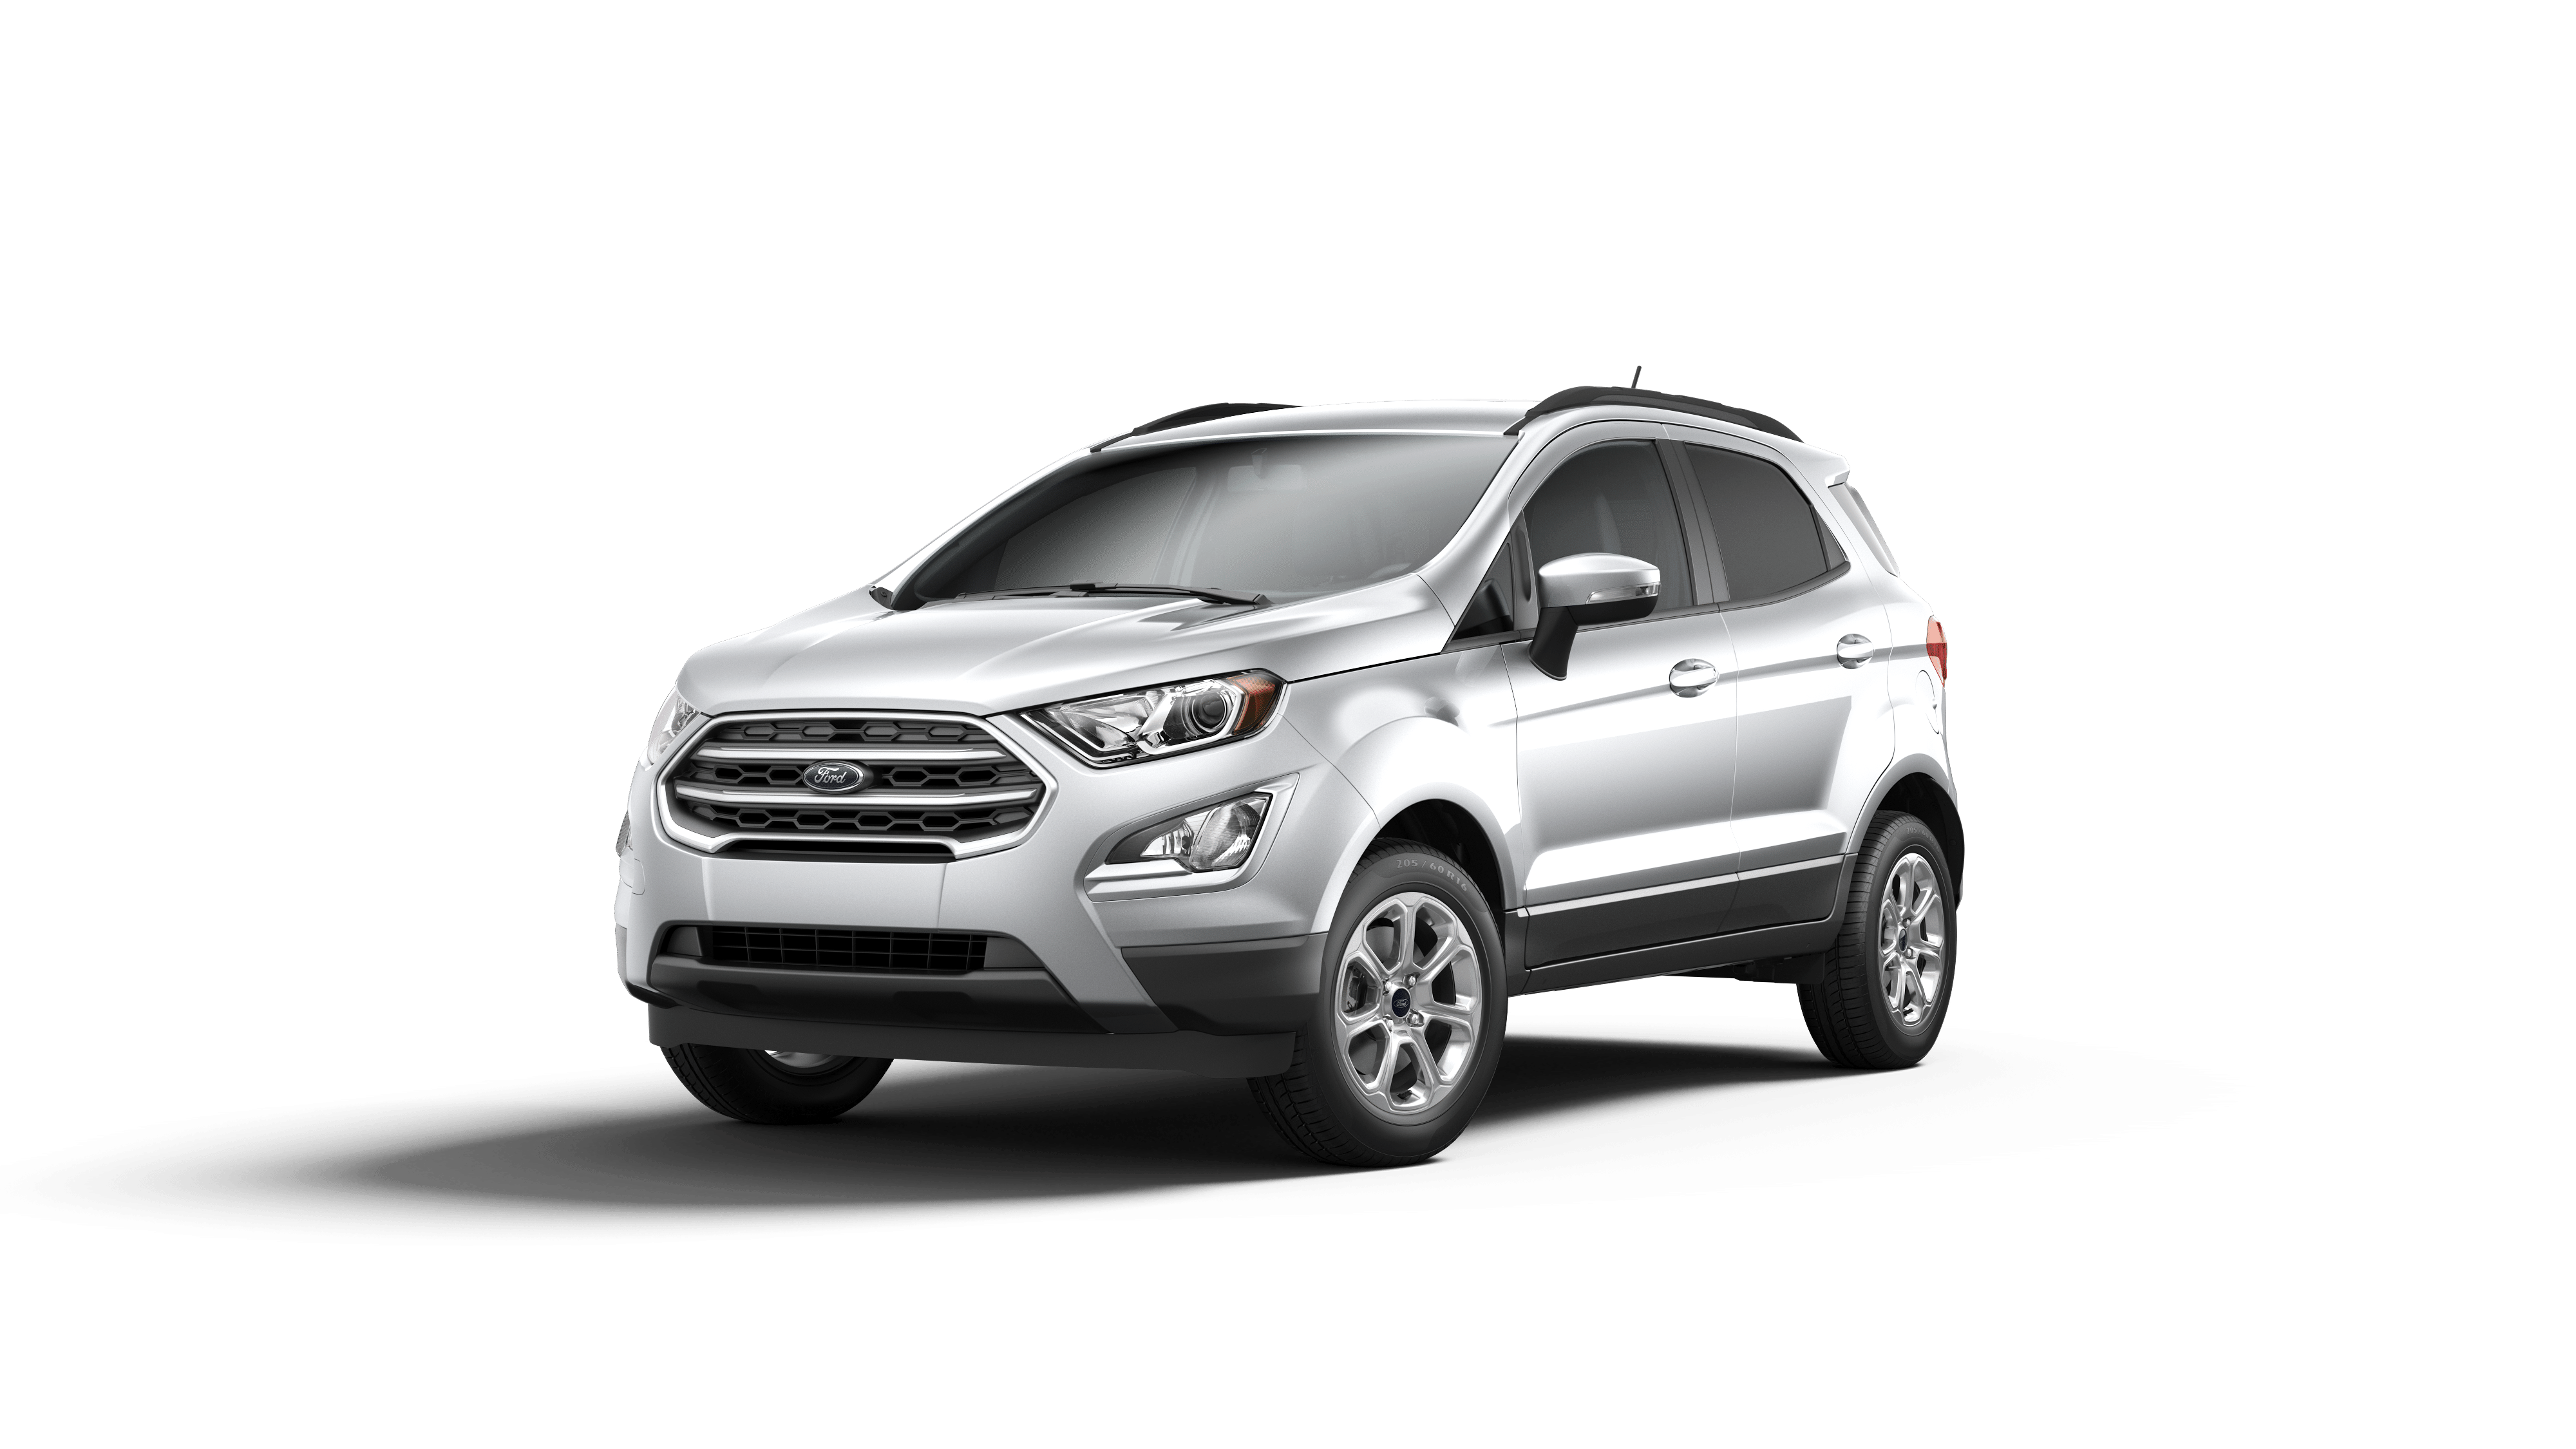 Ford X Plan Pricing >> 2019 Ford EcoSport for sale in Neenah - MAJ6S3GL2KC284941 - Bergstrom Neenah Ford-Lincoln